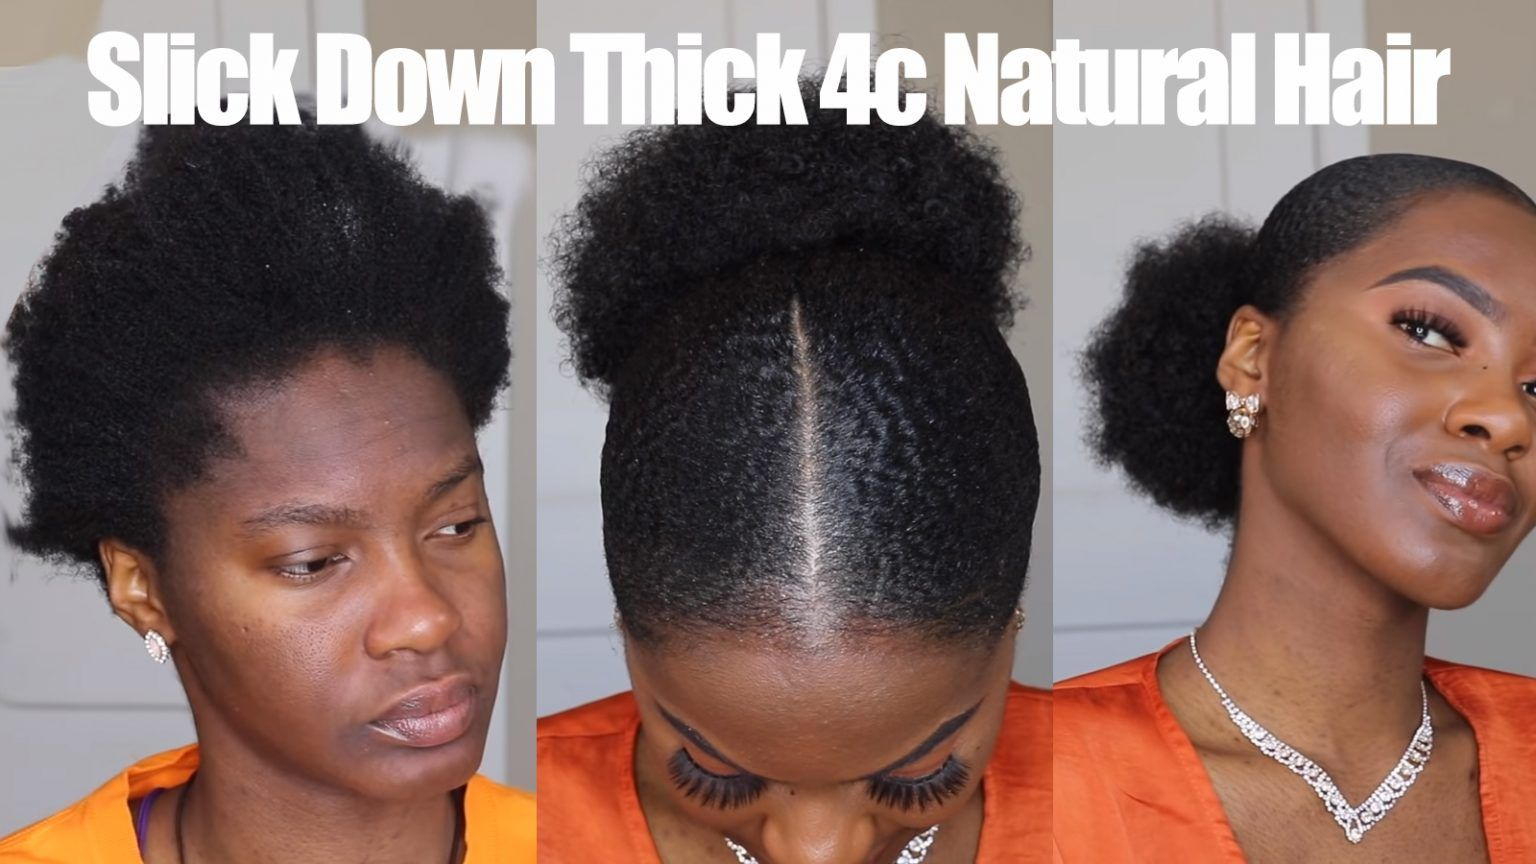 How Adanna Slicks Down Her Sister S Thick 4c Natural Hair The Style Looks Amazing African American Hairstyle Videos Aahv In 2020 Natural Hair Styles 4c Natural Hair Hair Videos